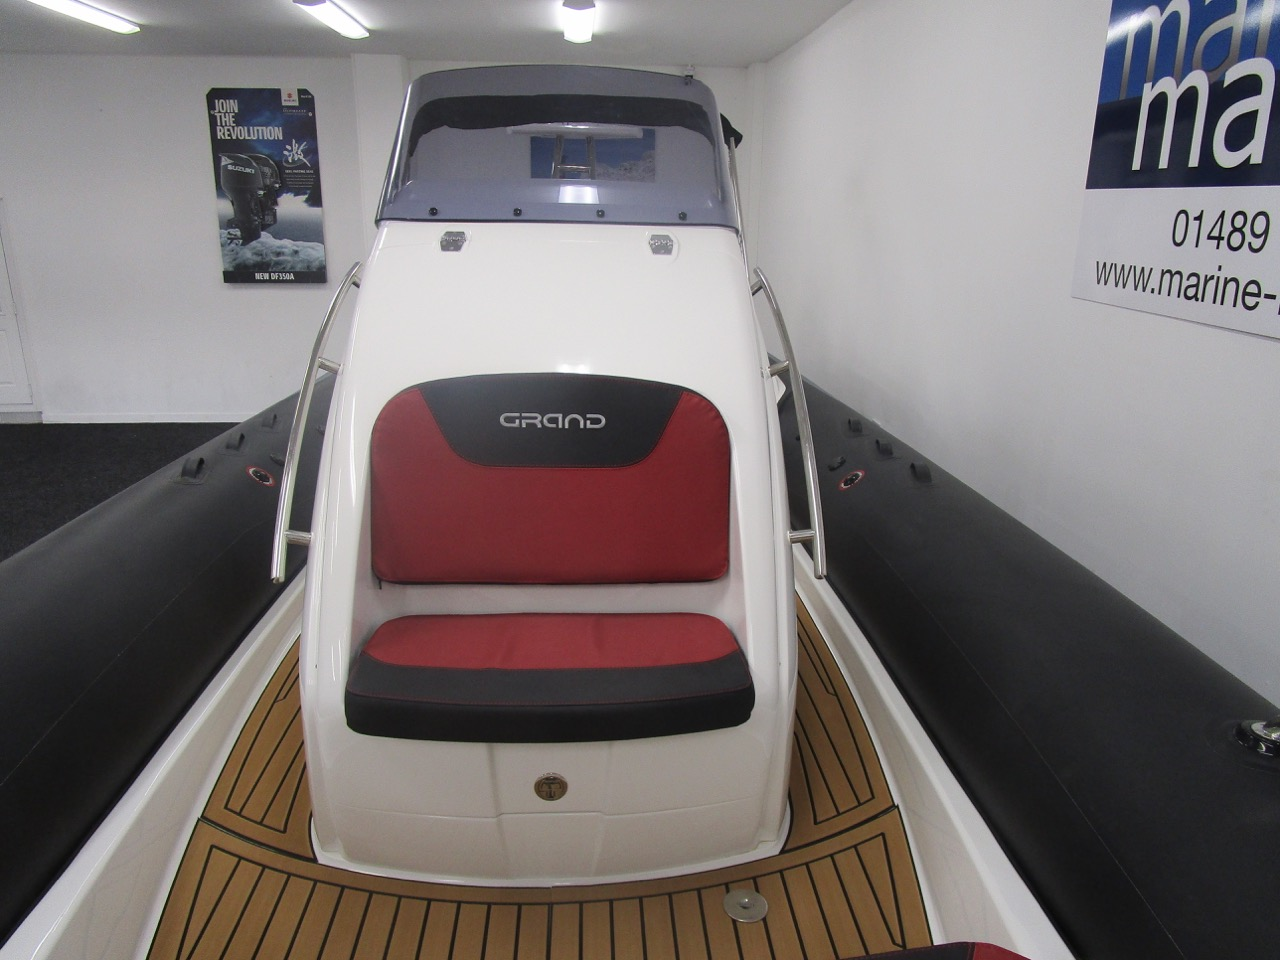 GRAND G850 RIB double console front seat